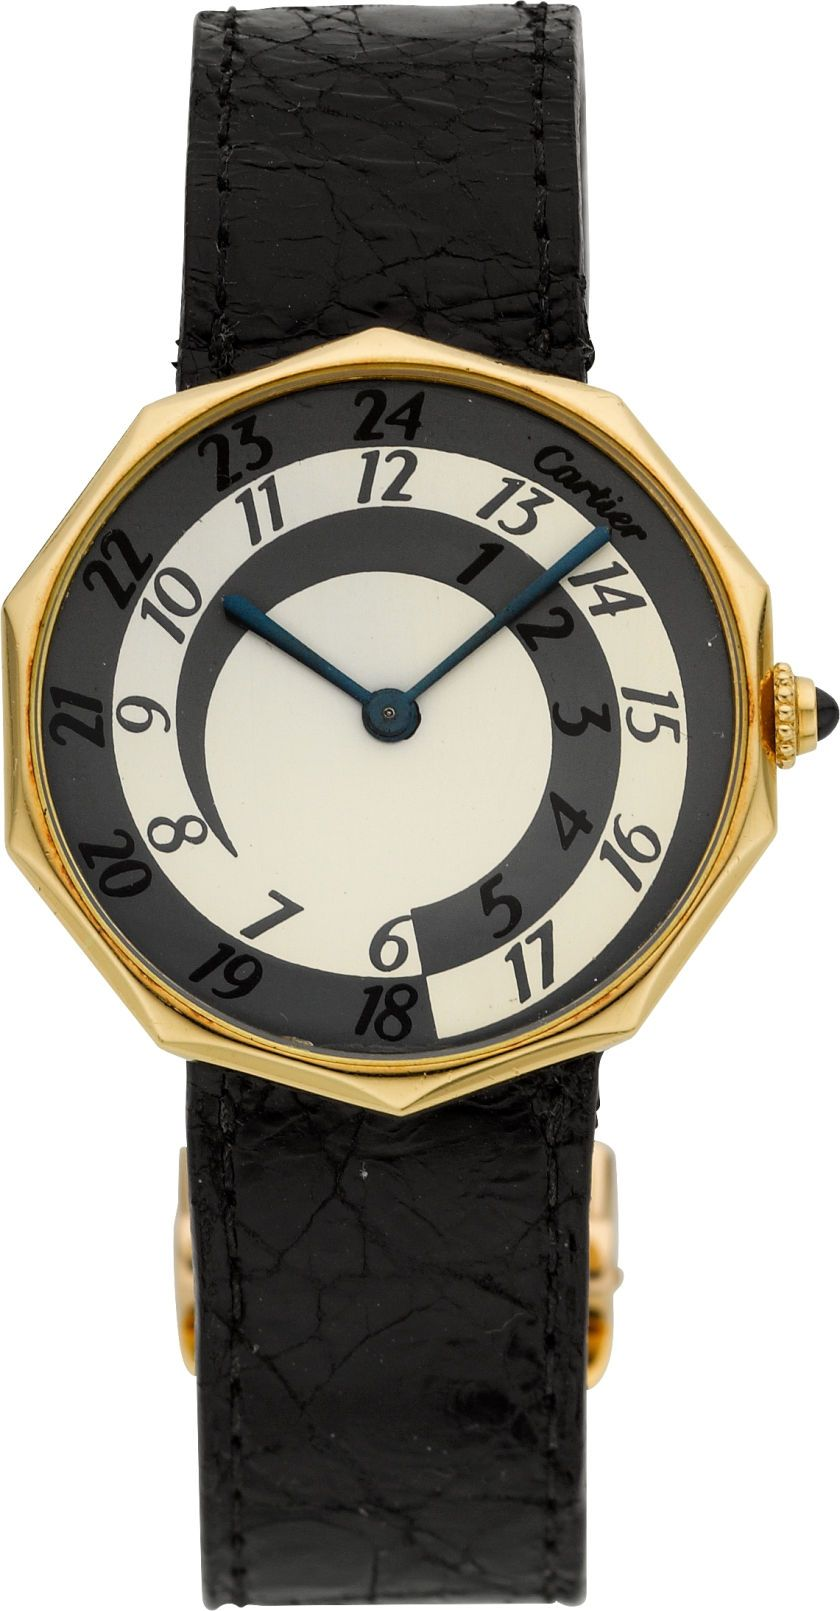 Cartier, London, Important & Unique Gold Decagonal Watch With Rare Enameled 24 Hour Day/Night Dial, circa 1968 Case: 18k yellow gold decagonal case, each edge with a curved bevel, cabochon sapphire set knurled crown, 23 mm Dial: cream and grey with 24 hour indication, the cream and grey portions divided for diurnal and nocturnal hours to create a spiral effect, tapered blue steel batons